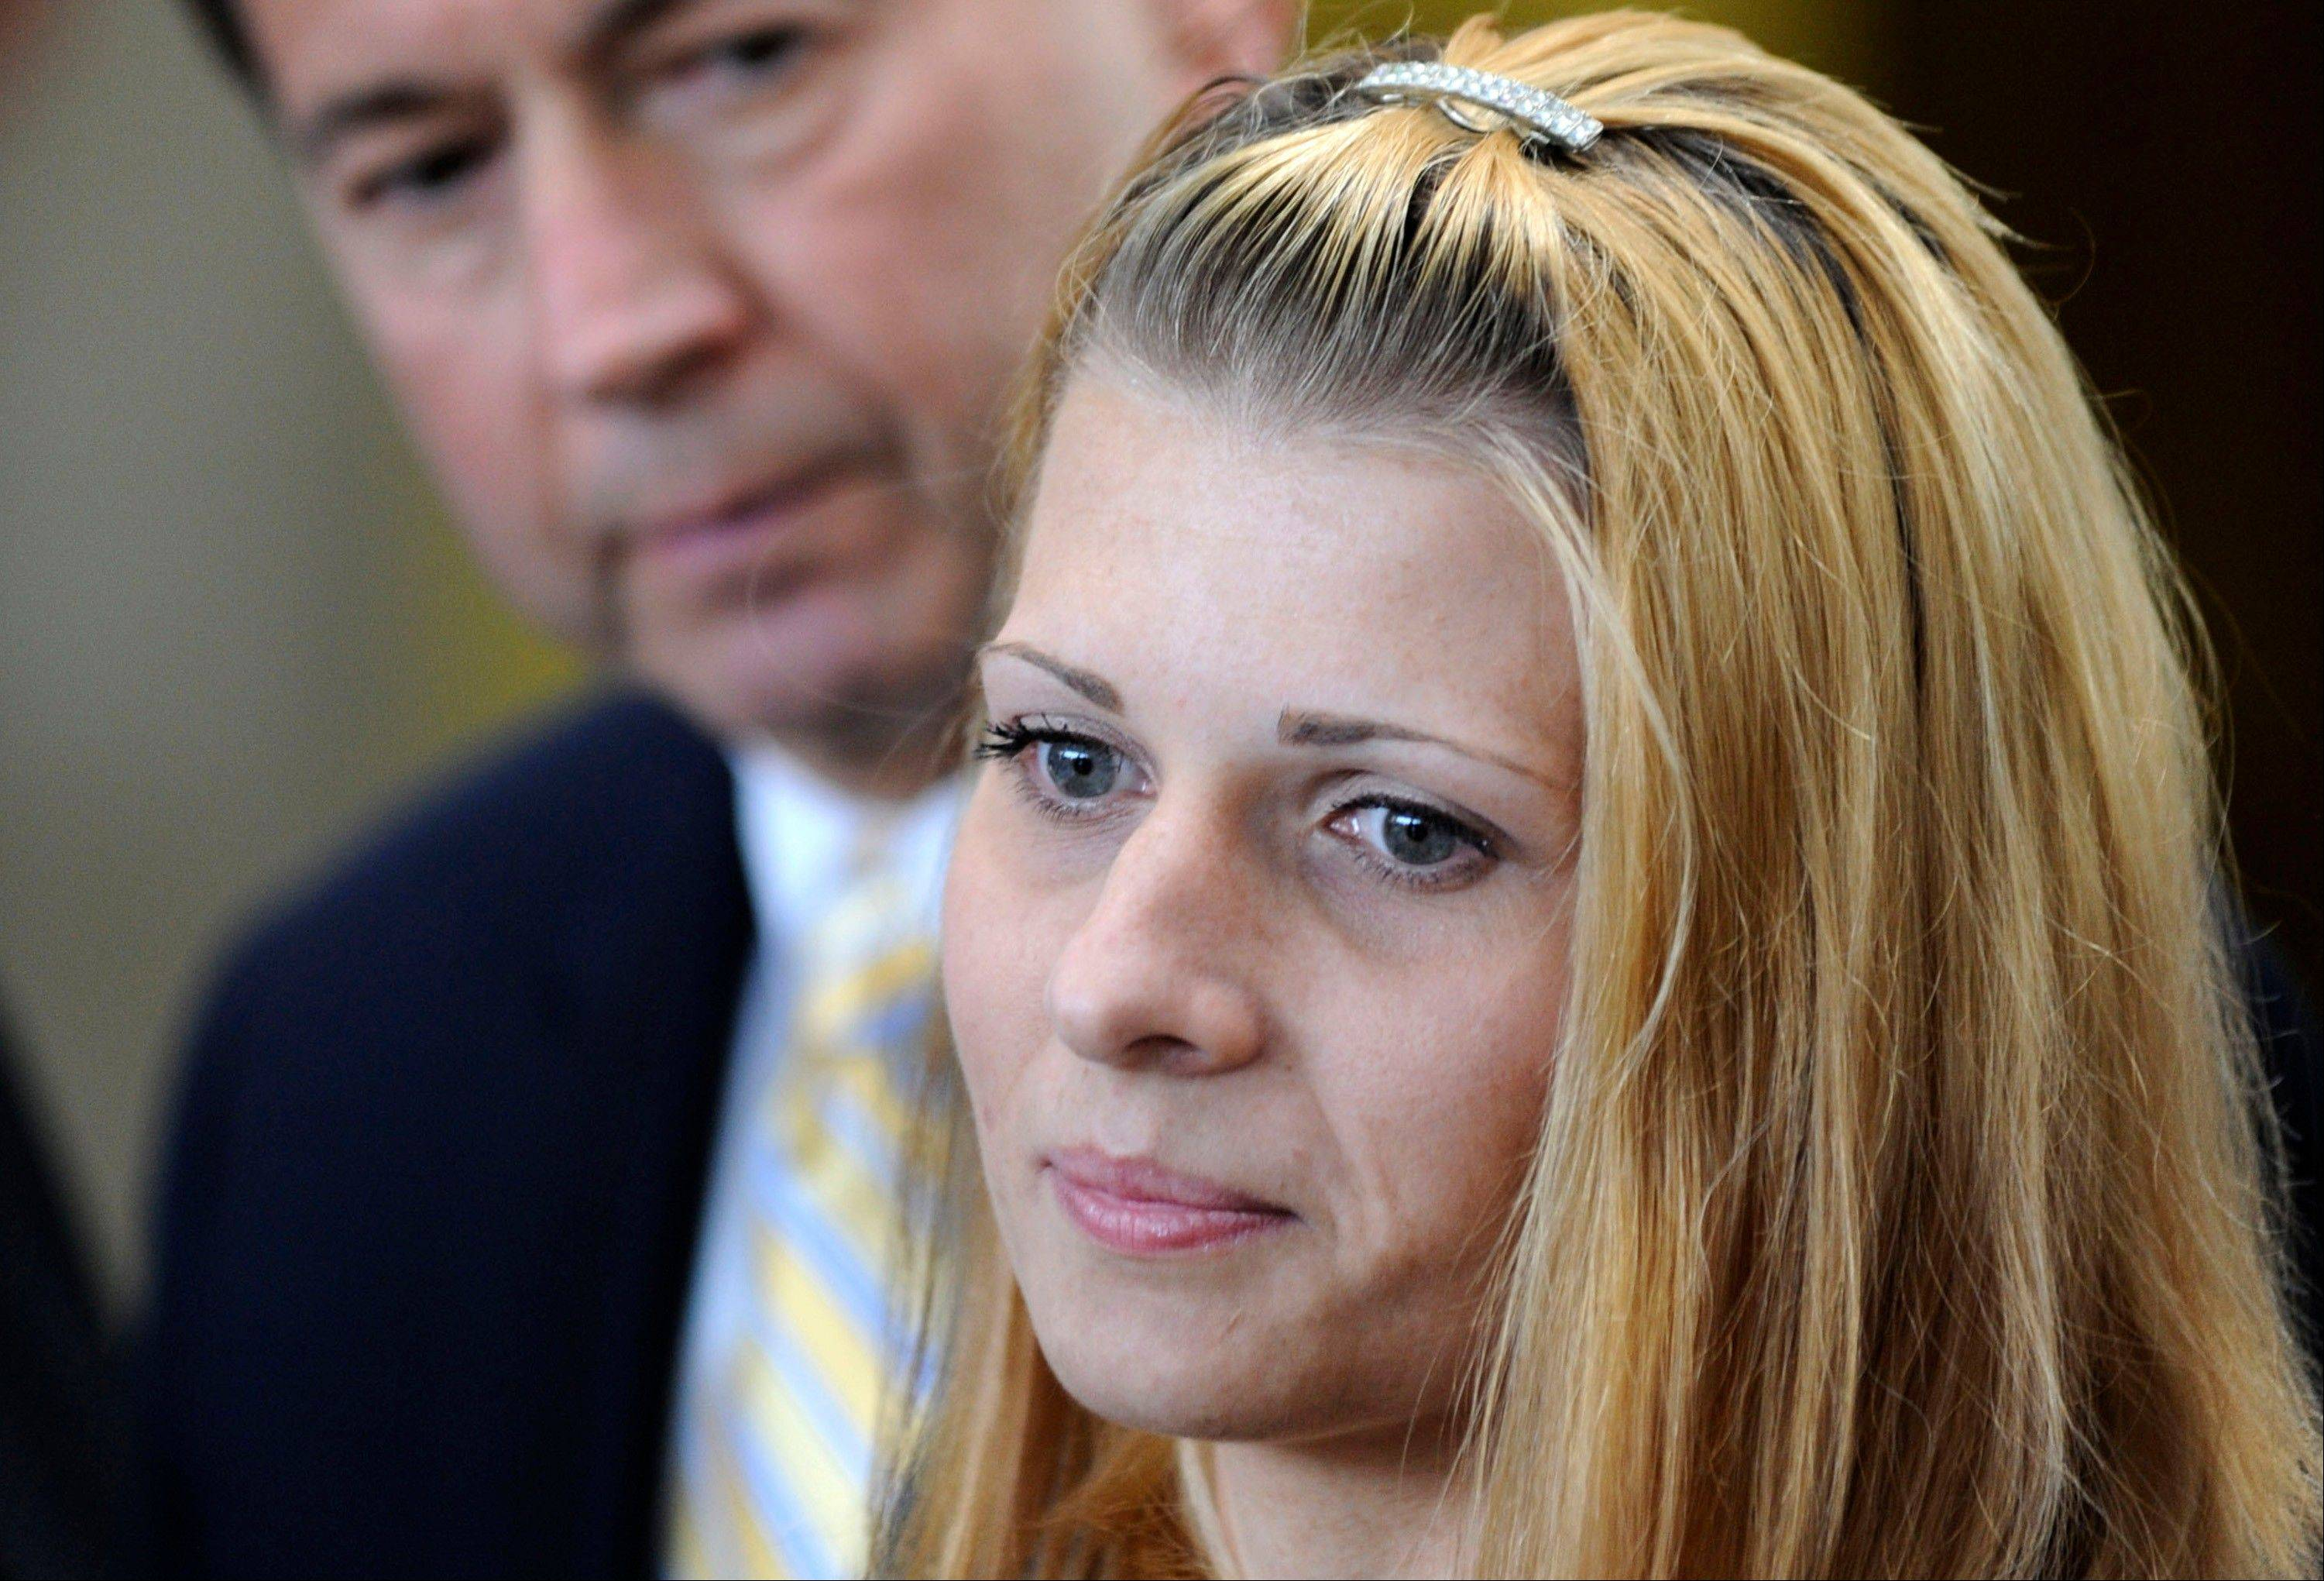 In this June 23, 2009 file photo Karolina Obrycka, right, with her attorney Terry Ekl, speaks outside the Cook County courthouse in Chicago, after Chicago police officer Anthony Abbate was sentenced to two years probation and anger management classes for the videotaped attack against her that went viral on the internet. On Tuesday, jurors at a federal civil trial found that Chicago police adhered to a code of silence protecting fellow officers in the case brought by a Obrycka. The jurors awarded the Obrycka $850,000 in damages.